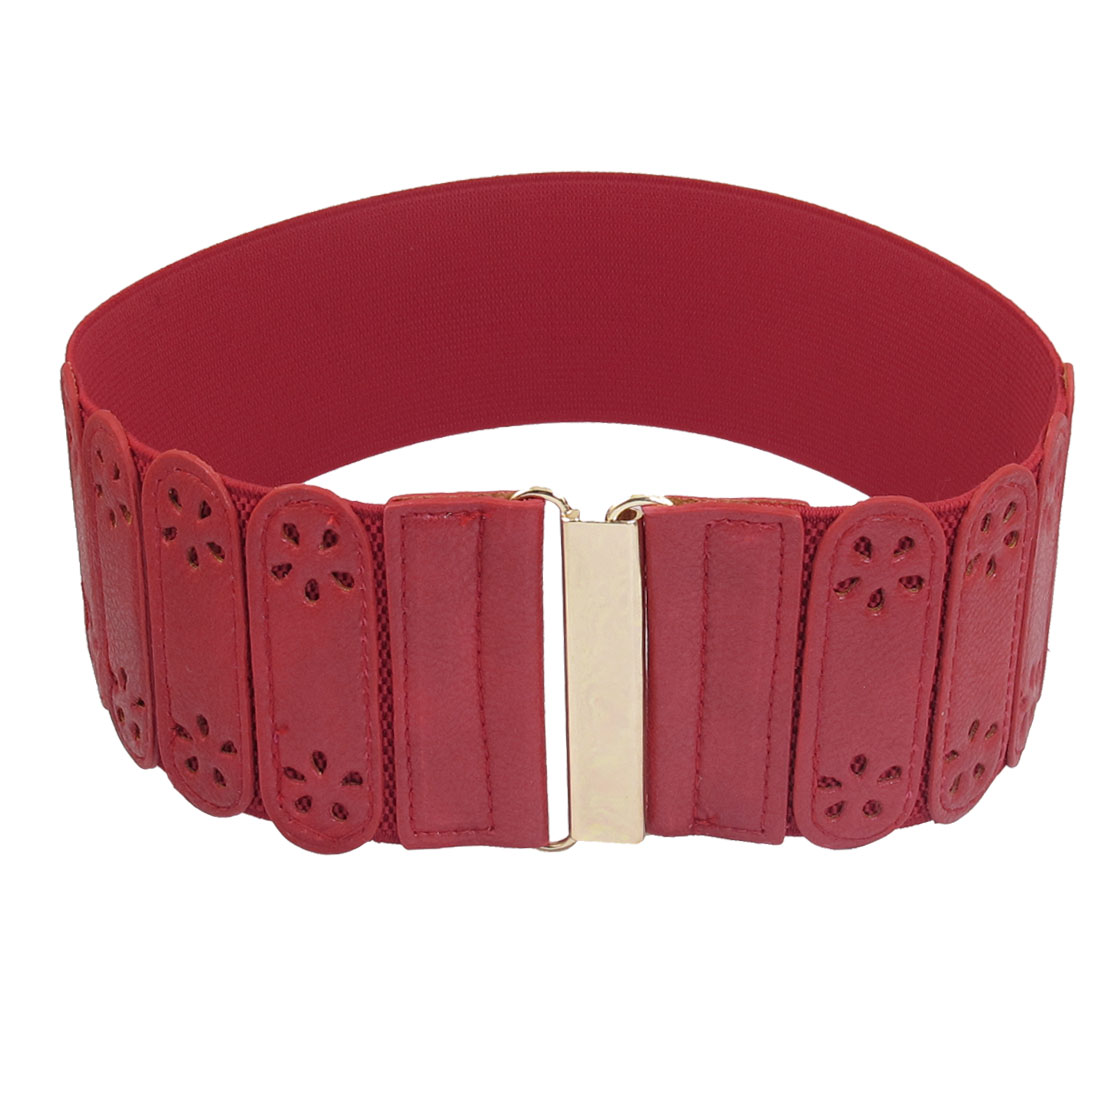 Ladies Hollow Flower Decor Interlocking Closure Stretchy Band Waist Belt Red